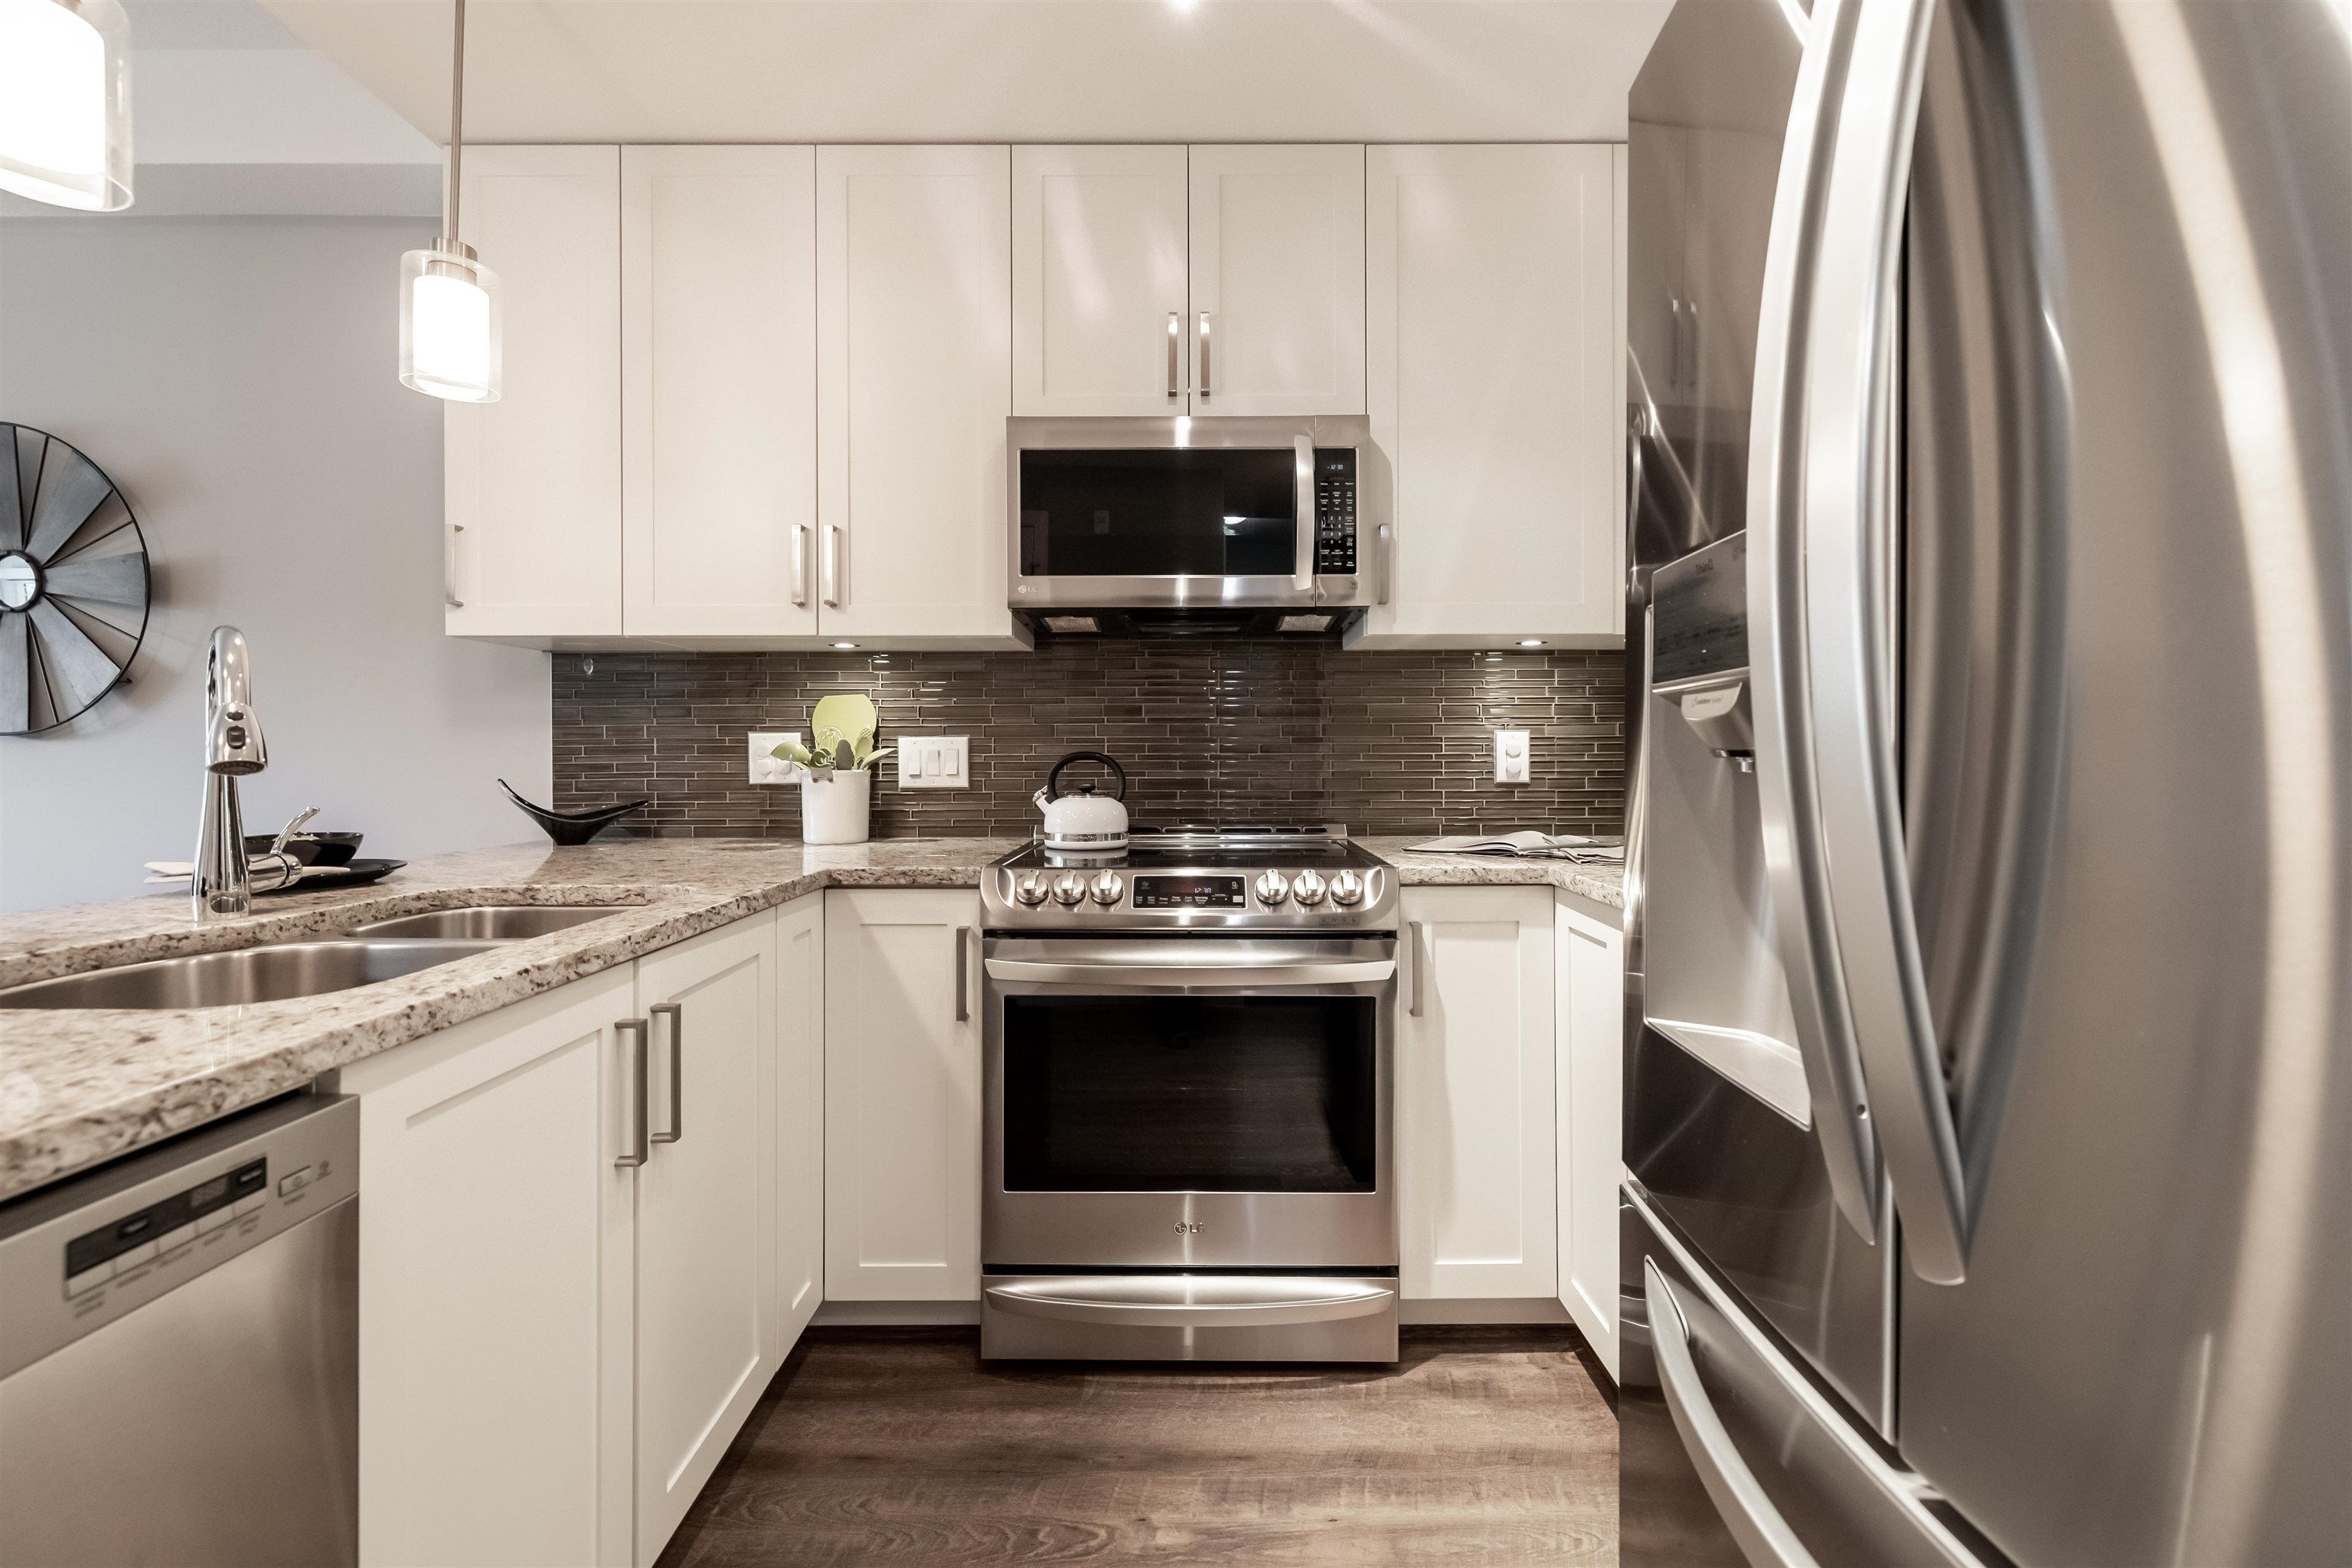 """Main Photo: 308 6470 194 Street in Surrey: Clayton Condo for sale in """"Waterstone"""" (Cloverdale)  : MLS®# R2622977"""